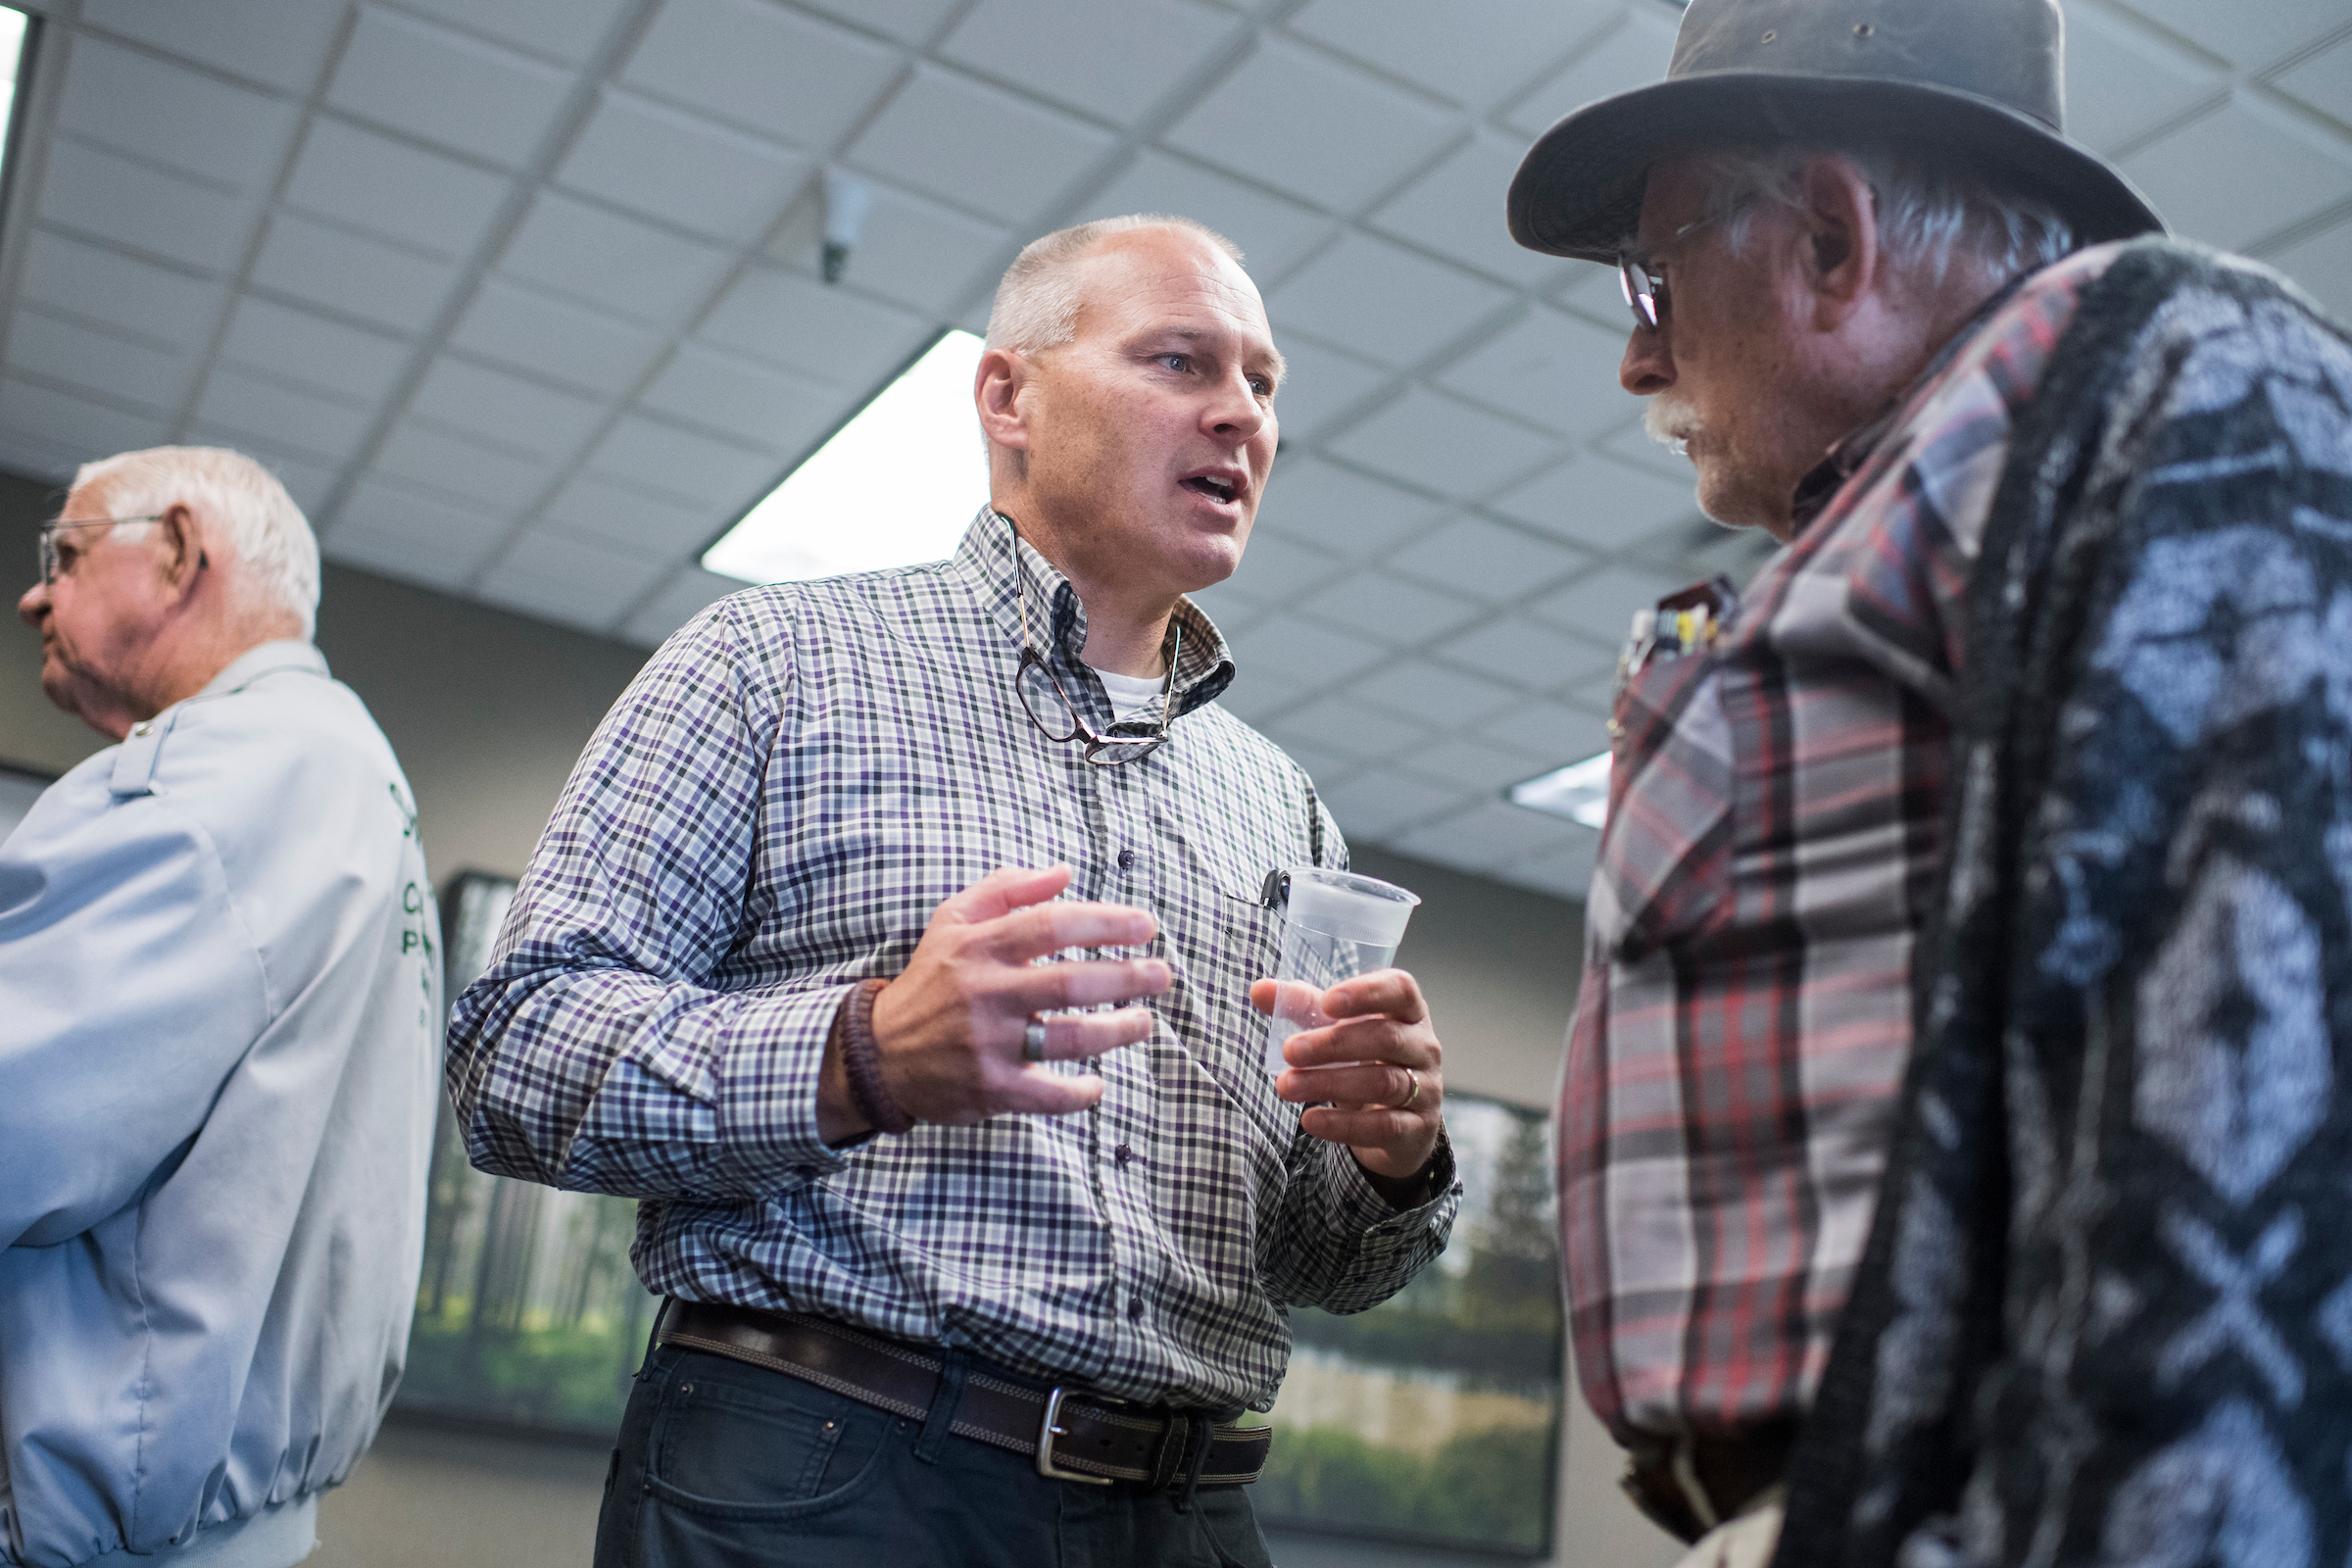 UNITED STATES - SEPTEMBER 18: Pete Stauber, Republican candidate for Minnesota's 8th Congressional District, talks with guests during a meet and greet with local GOP politicians in Park Rapids, Minn., on September 18, 2018. (Photo By Tom Williams/CQ Roll Call)